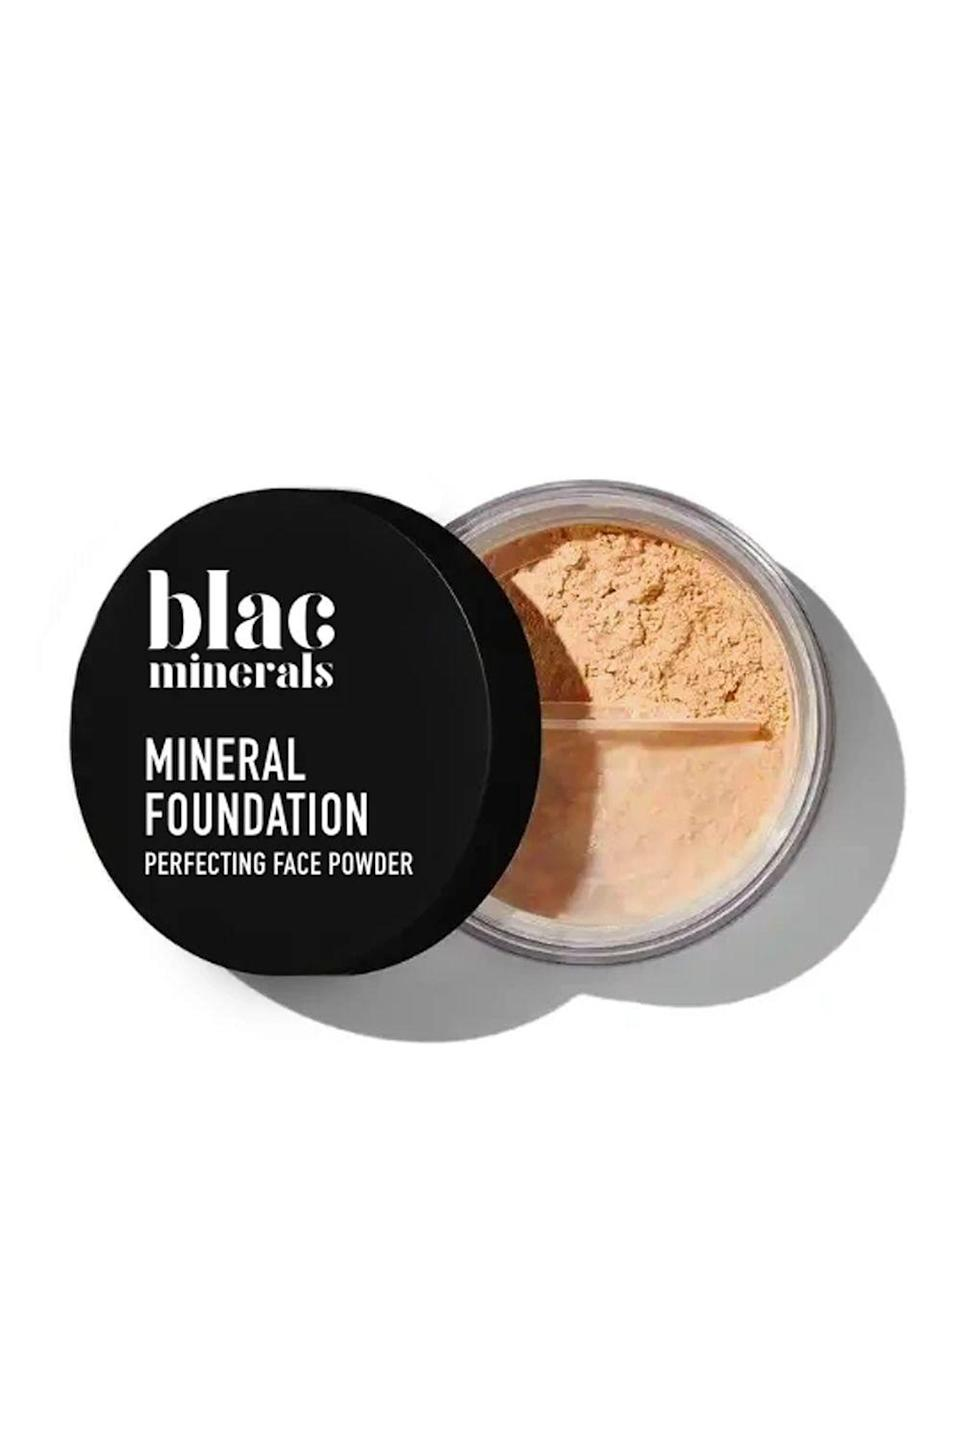 "<p><strong>foundation</strong></p><p>blacminerals.com</p><p><strong>$26.00</strong></p><p><a href=""https://www.blacminerals.com/collections/foundation/products/copy-of-mineral-foundation?variant=28457826320473"" rel=""nofollow noopener"" target=""_blank"" data-ylk=""slk:Shop Now"" class=""link rapid-noclick-resp"">Shop Now</a></p><p>Non-toxic and totally clean, this all-natural loose powder foundation is<strong> made with skin-friendly <a href=""https://www.cosmopolitan.com/style-beauty/beauty/g26836213/mineral-foundation-makeup/"" rel=""nofollow noopener"" target=""_blank"" data-ylk=""slk:minerals"" class=""link rapid-noclick-resp"">minerals</a> to cover up redness, acne, spots</strong>, and more without causing irritation or clogging your pores. And unlike like some loose powder foundations, this one won't make your skin look ashy or chalky.</p>"